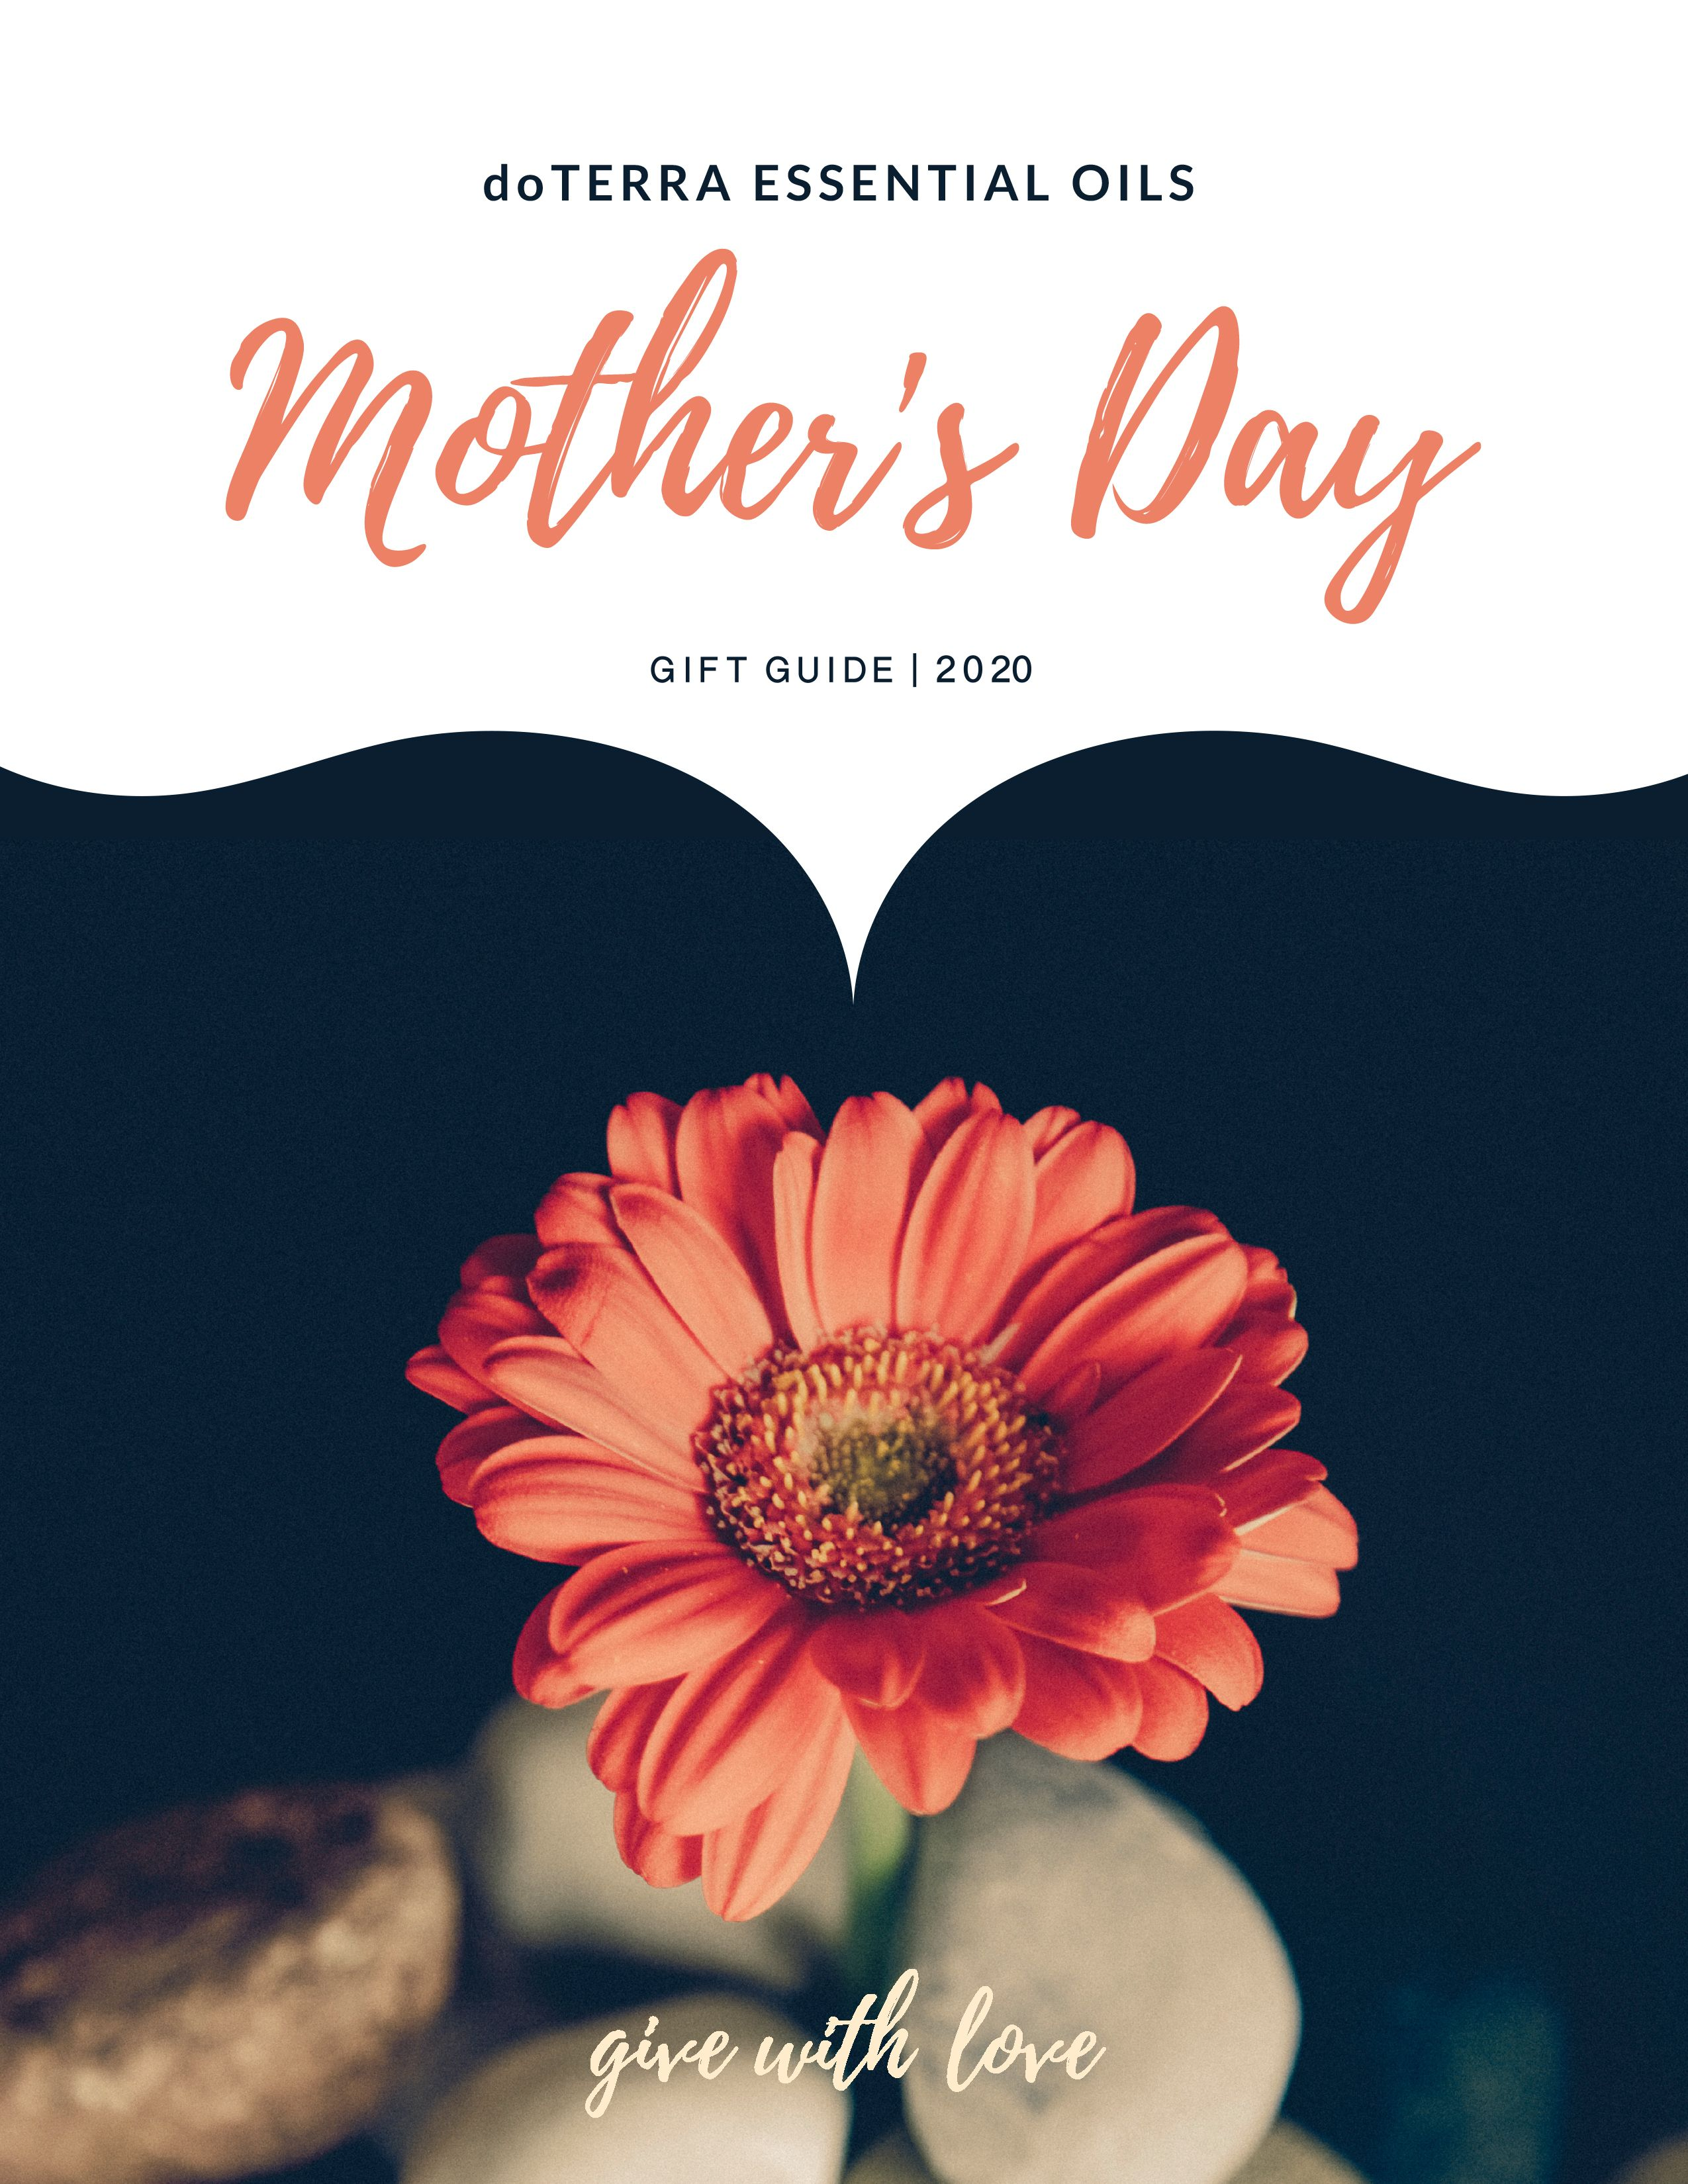 DoTerra essential oils make a perfect gift for Mother's Day